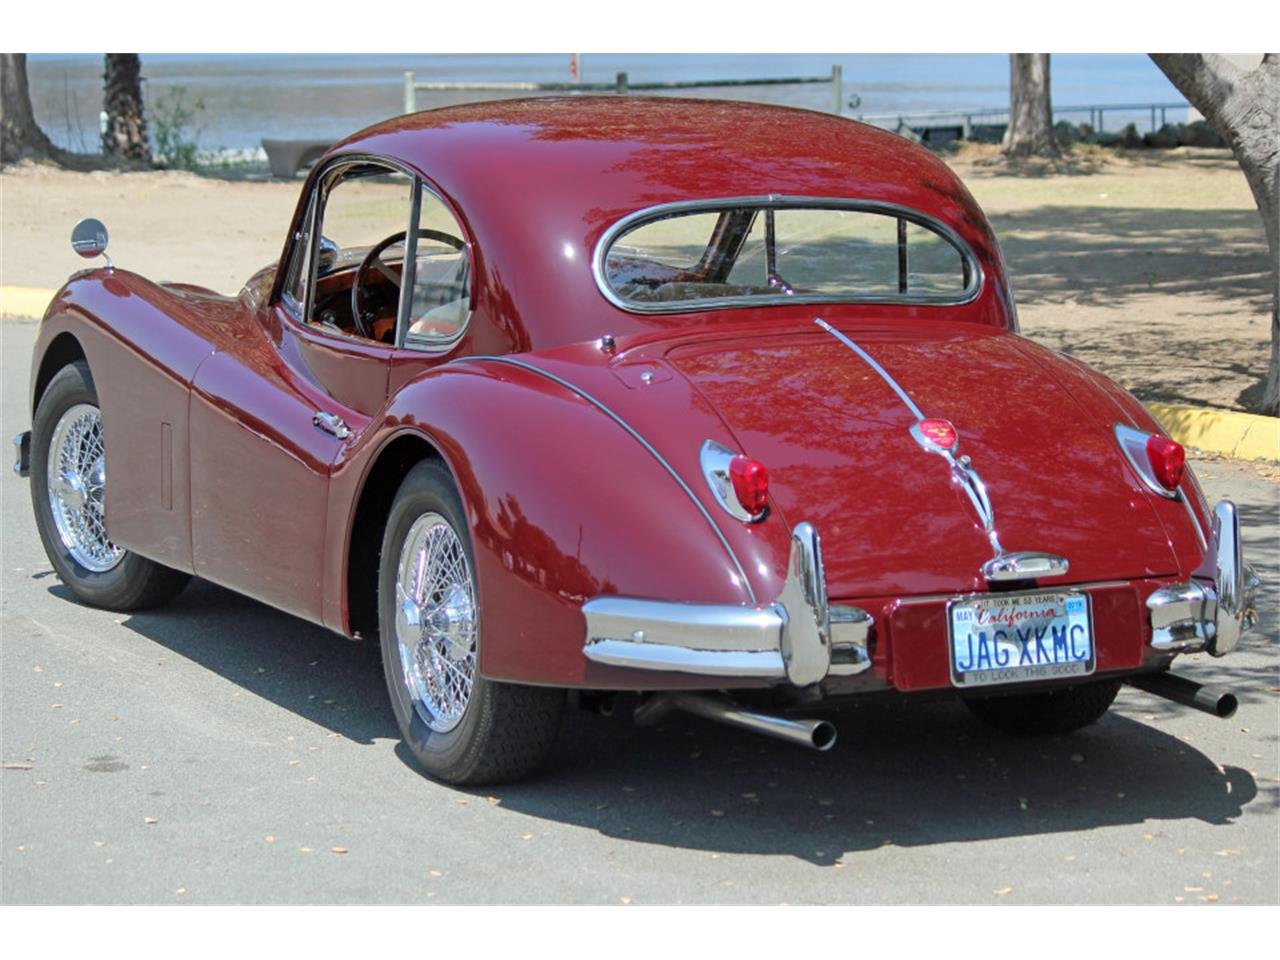 Large Picture of Classic '55 Jaguar XK140 located in California - $122,500.00 - NPGN